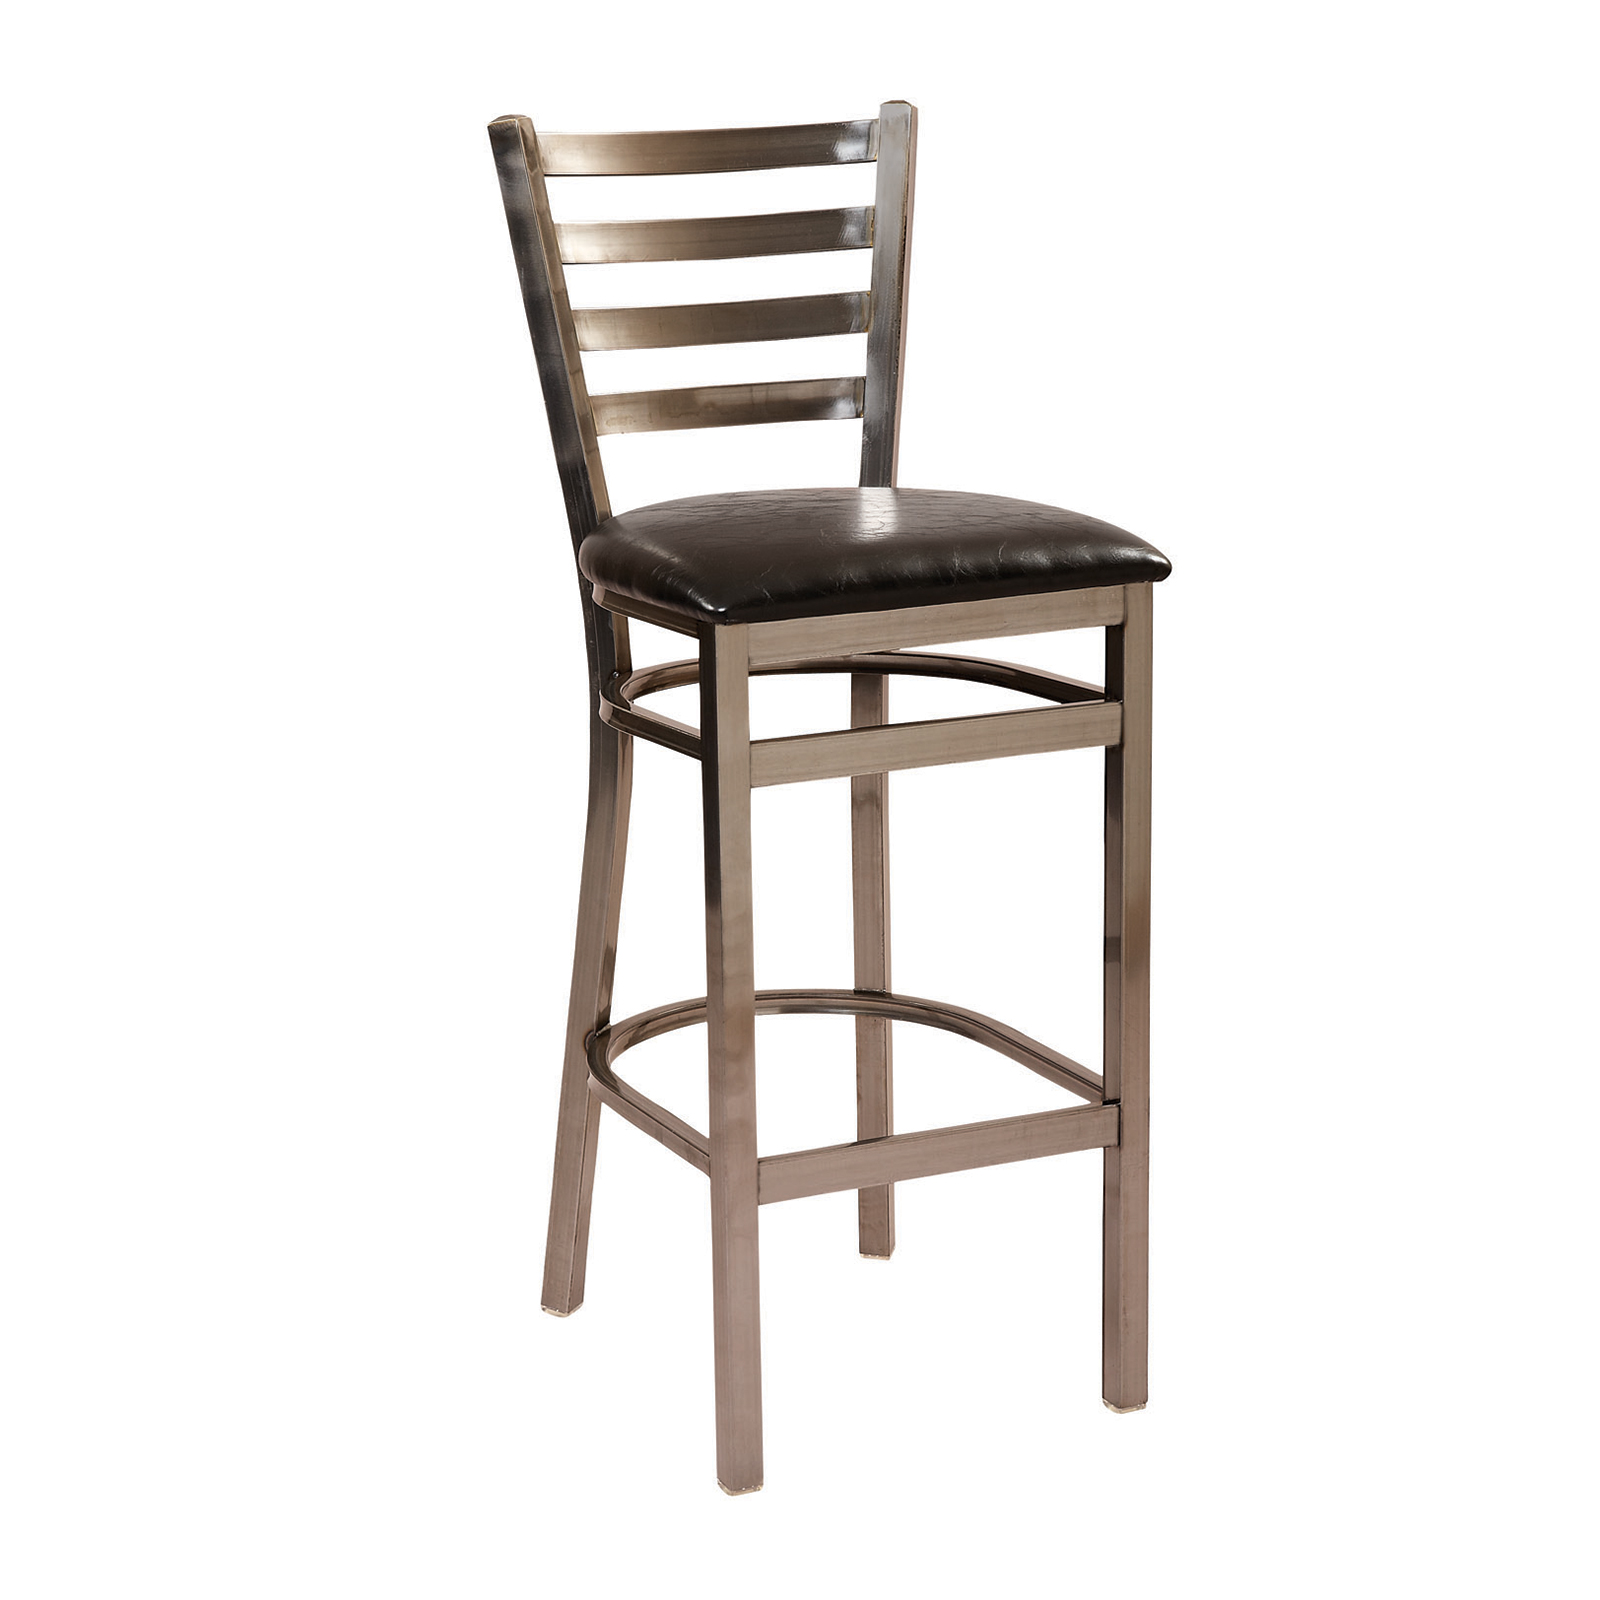 613-D PS G & A Commercial Seating bar stool, indoor